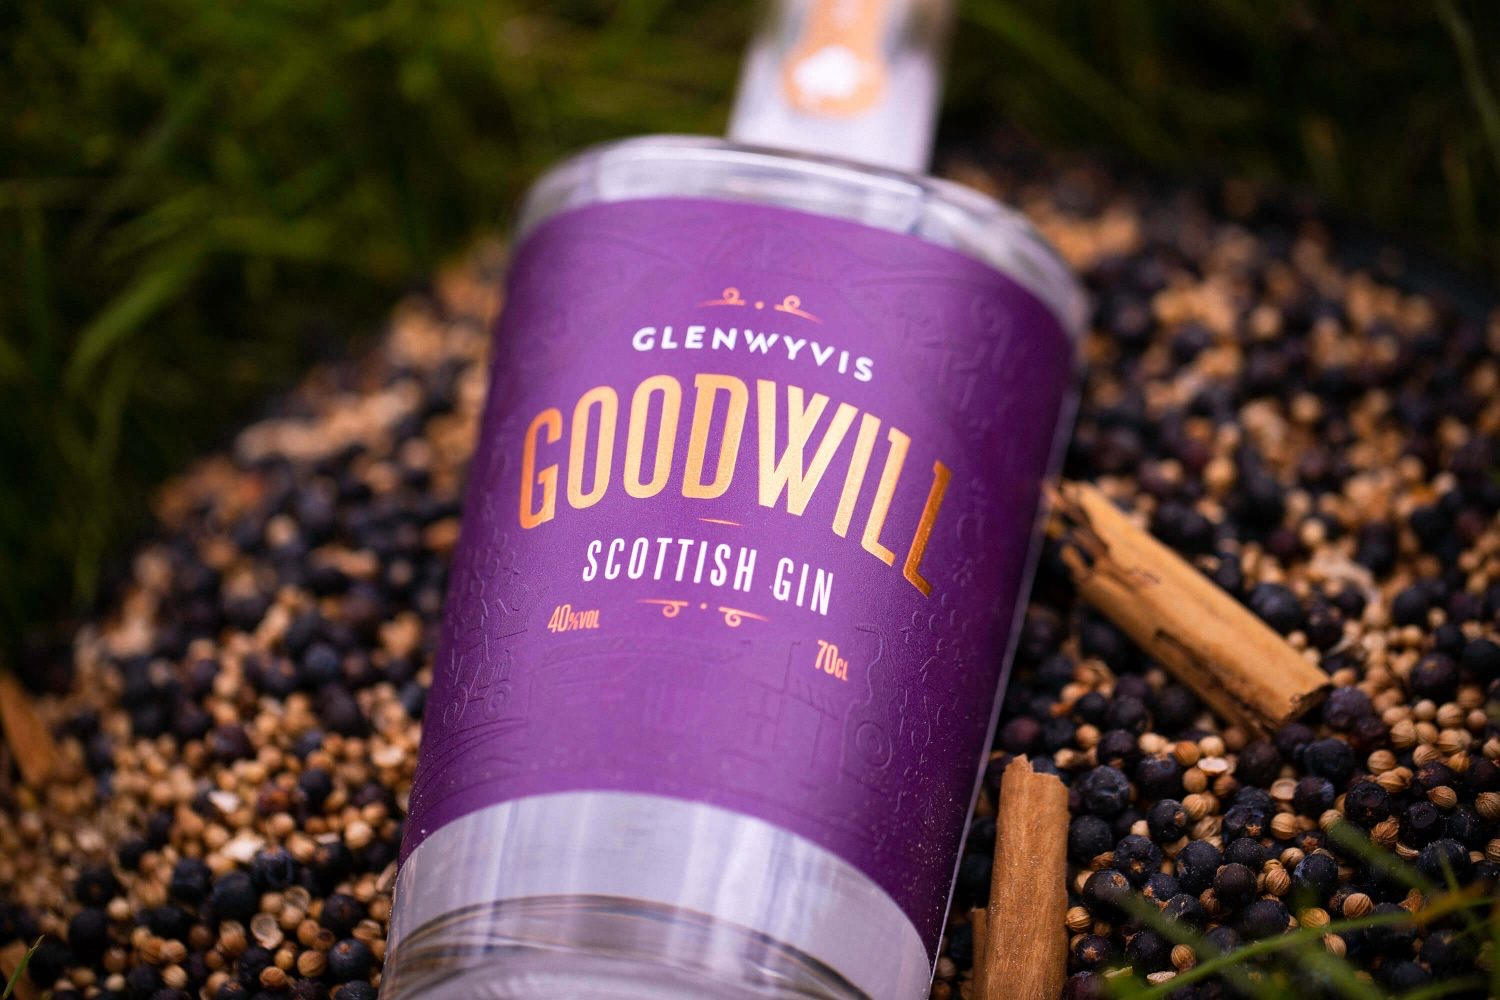 Good Will Gin, Gin of the Month, Think Gin Club, Artisan Gin